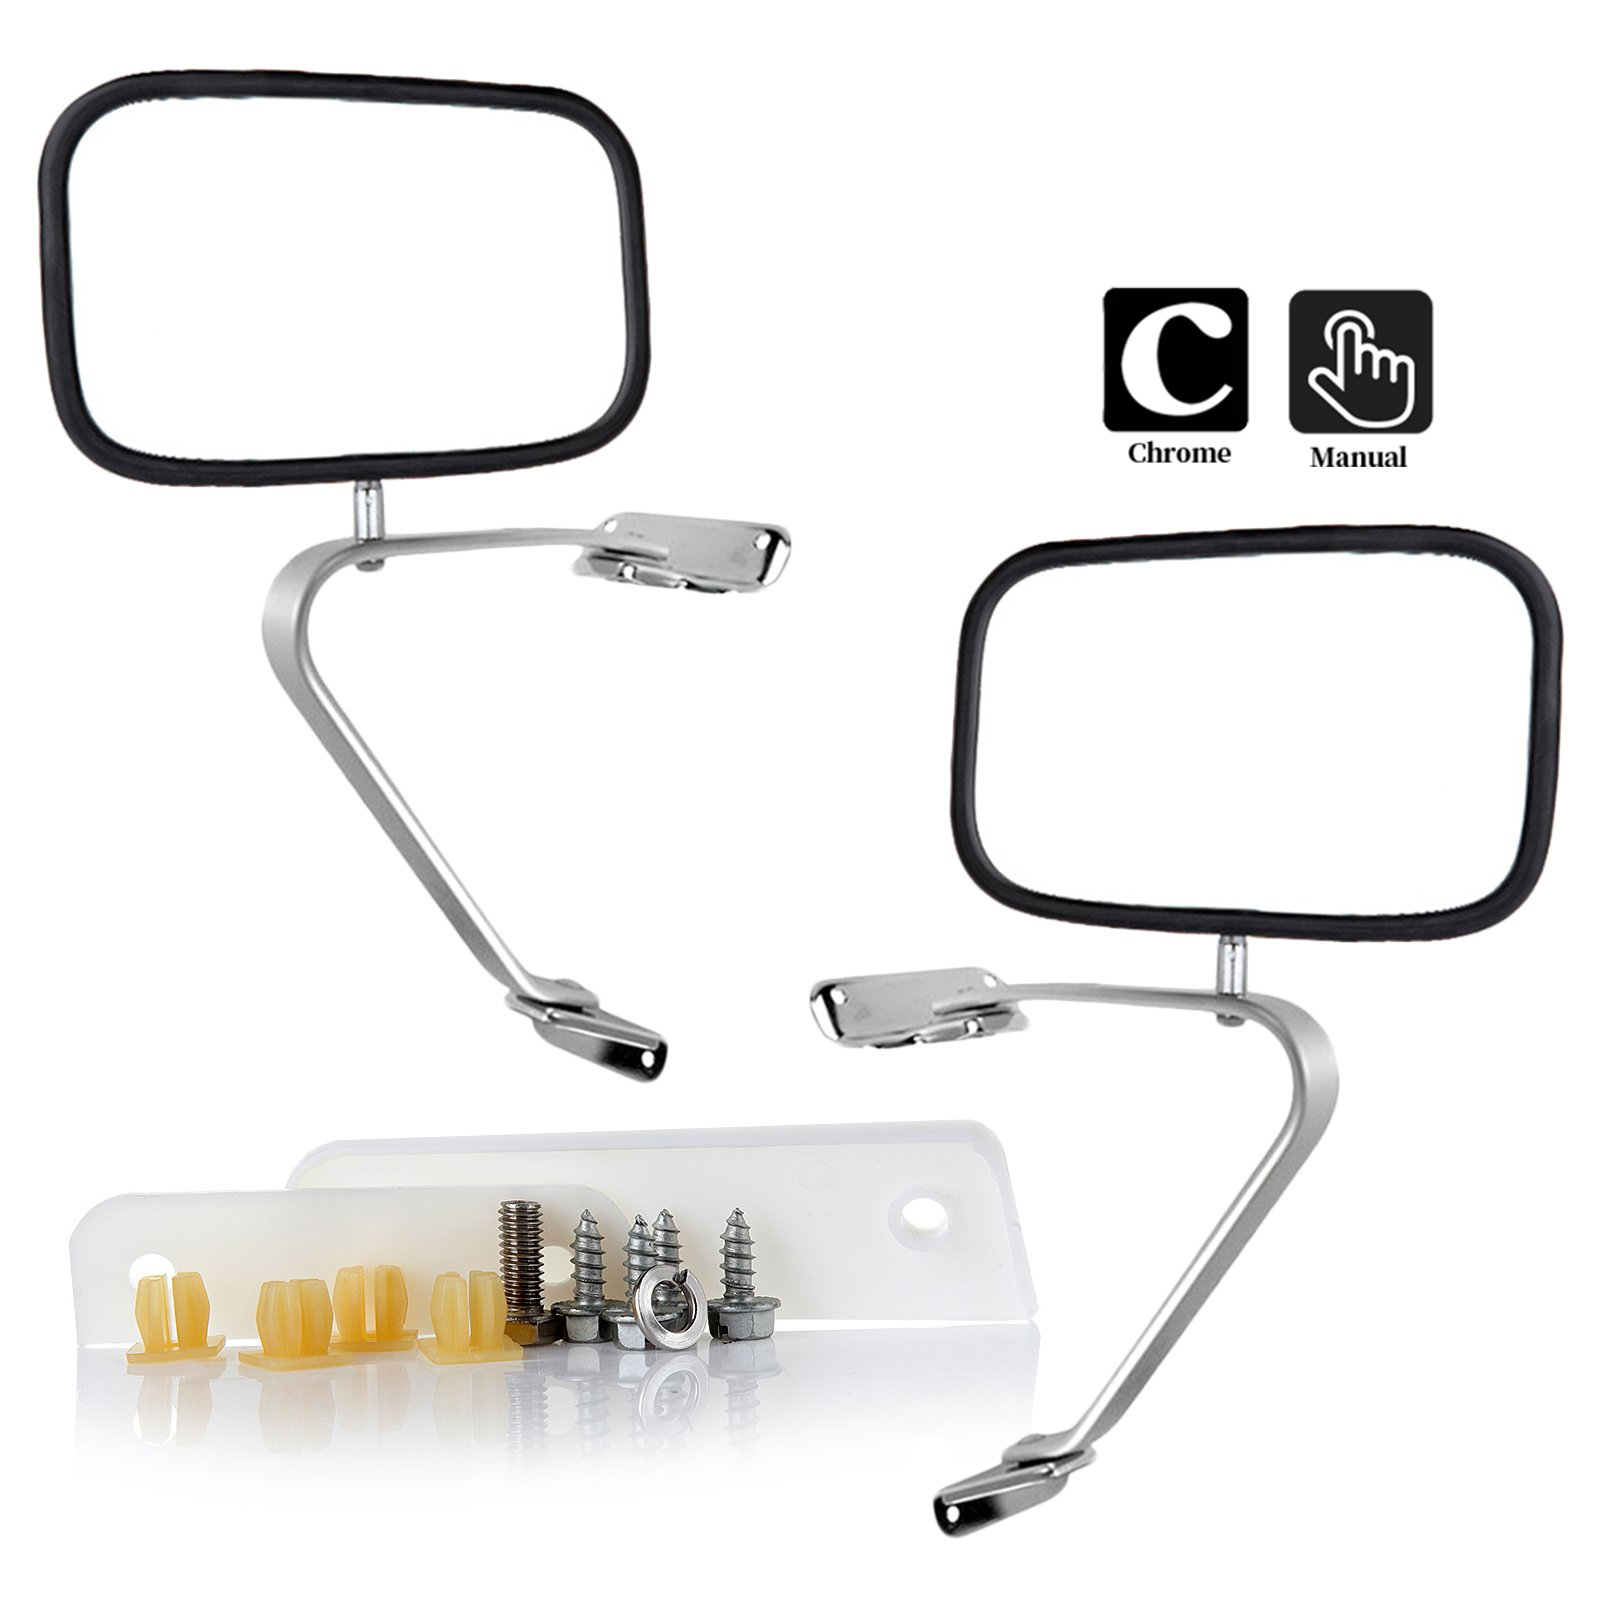 SCITOO Towing Mirrors Pair Chrome Side View Mirror by Replacement Mirror fit 80-96 Ford F150 F250 F350 F450 Ranger Bronco Explorer Truck Pickup by SCITOO